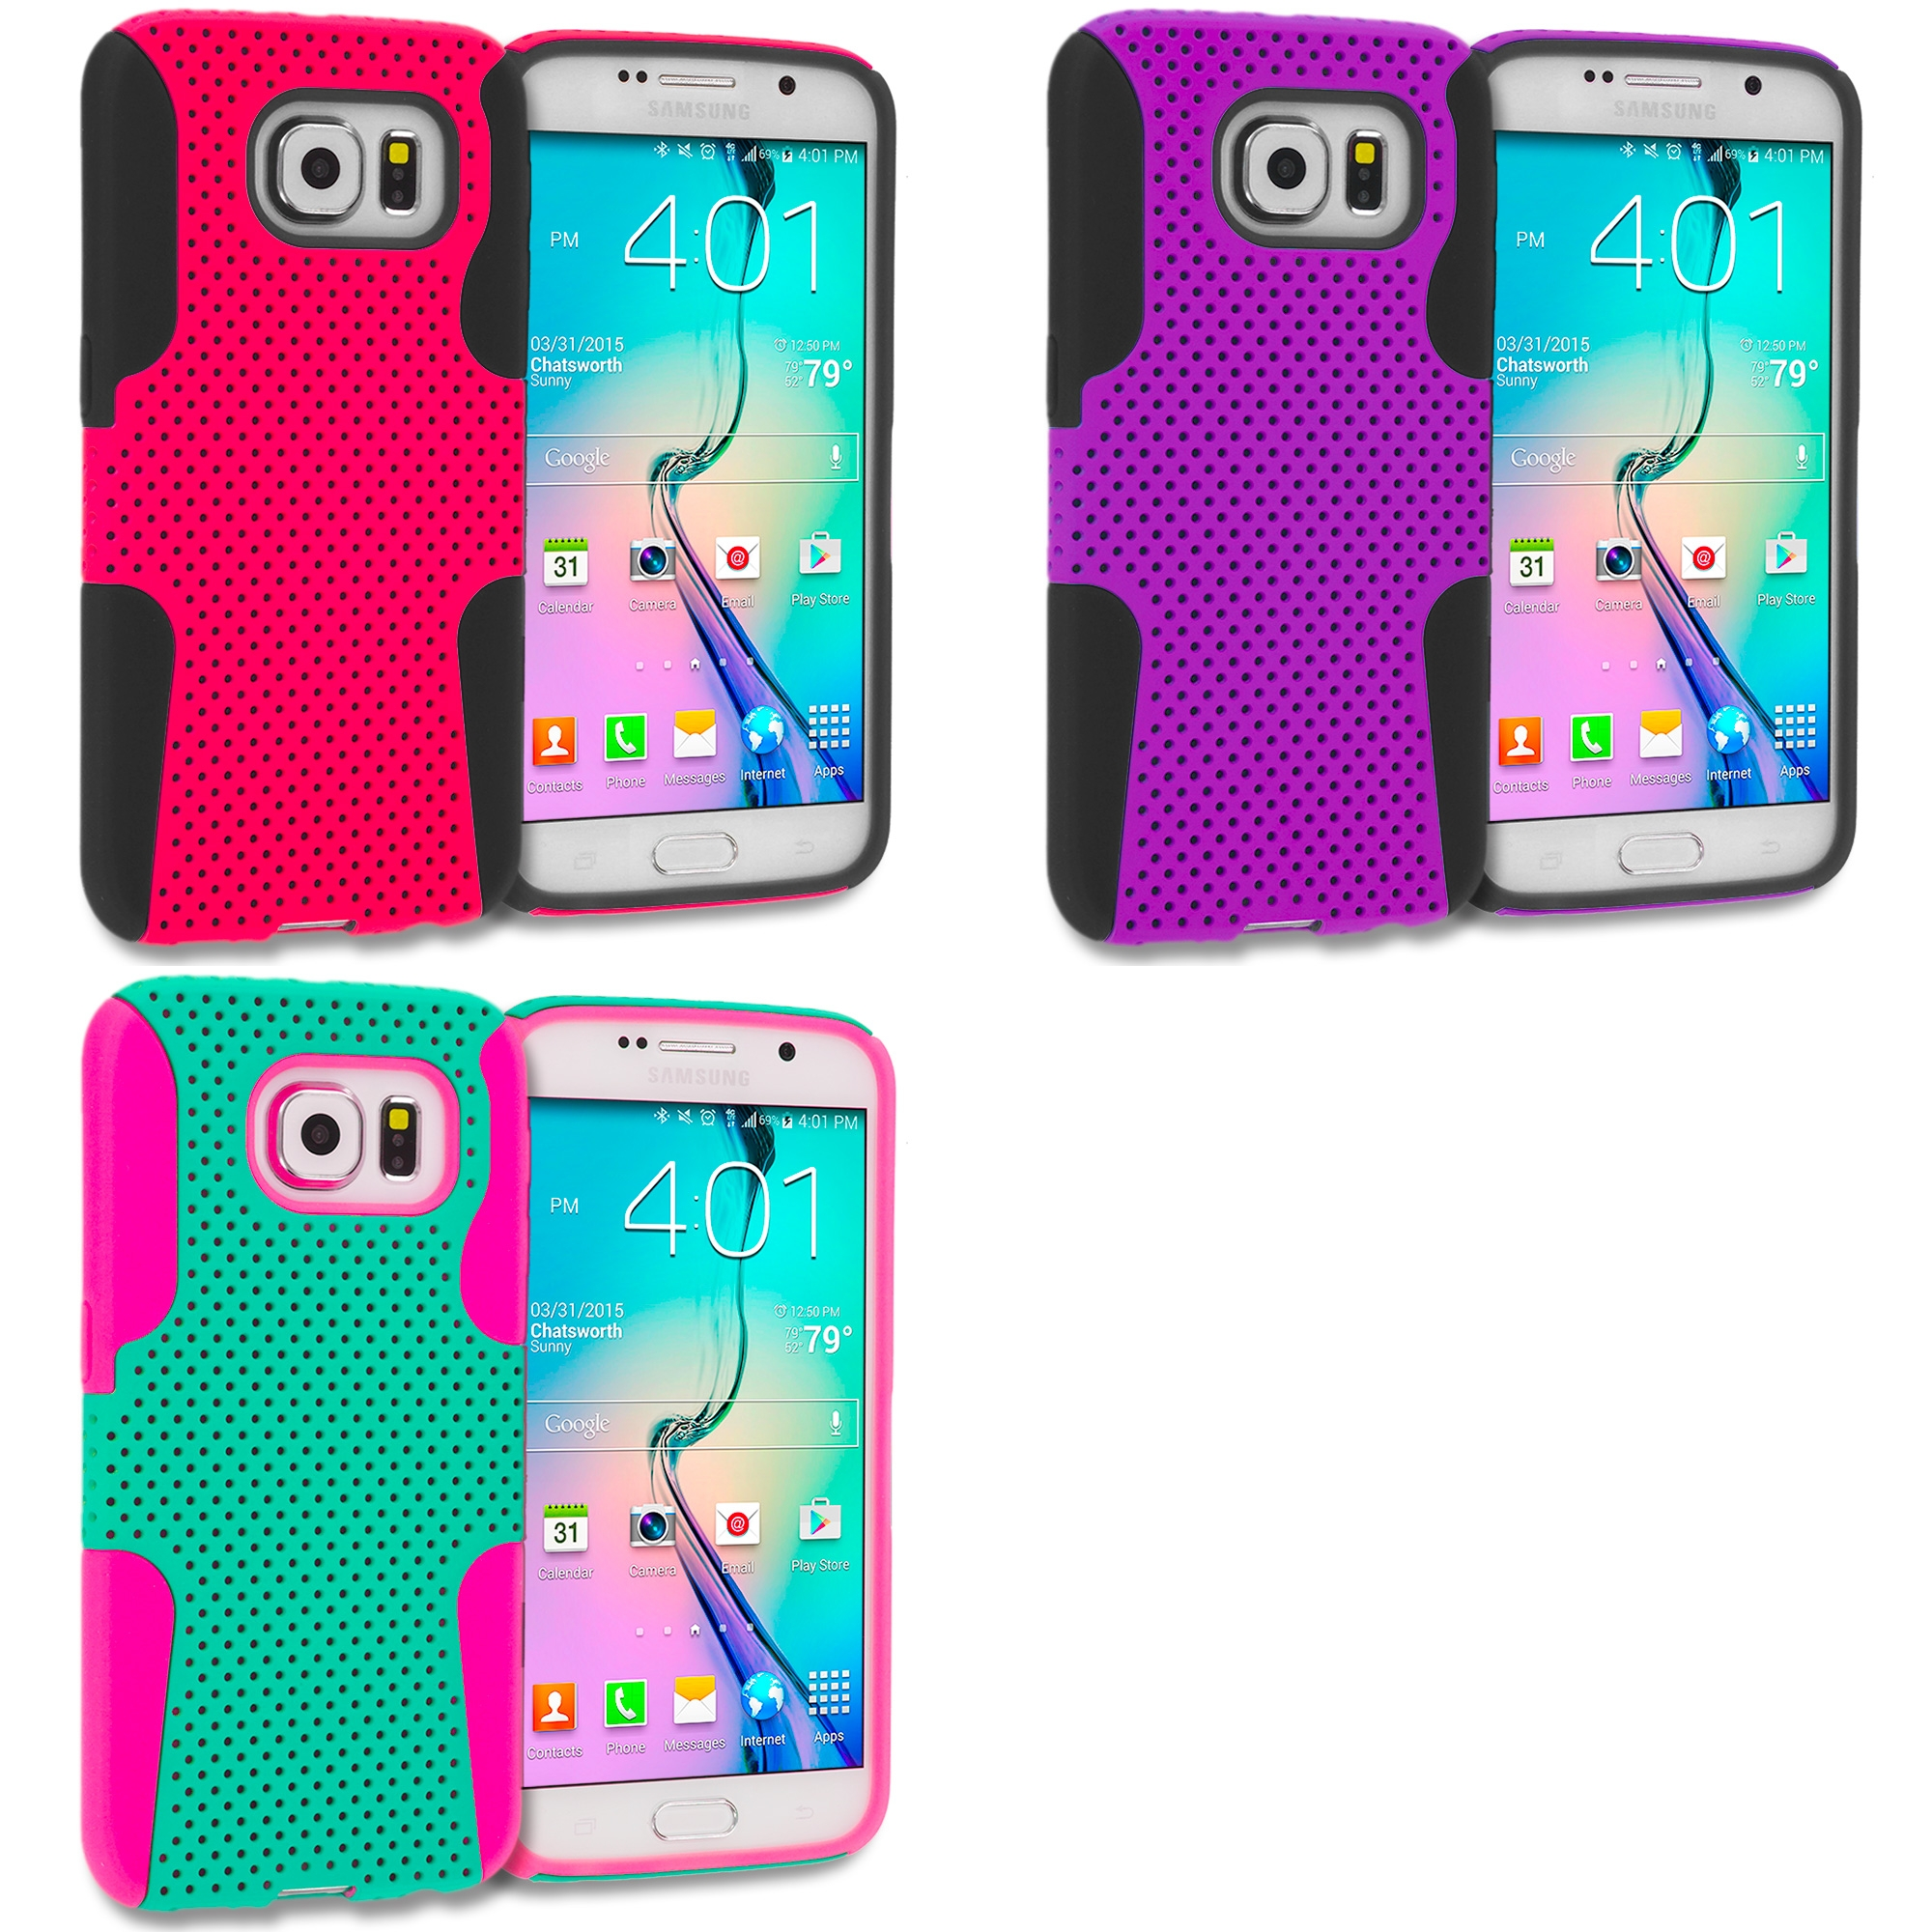 Samsung Galaxy S6 3 in 1 Combo Bundle Pack - Hybrid Mesh Hard/Soft Case Cover